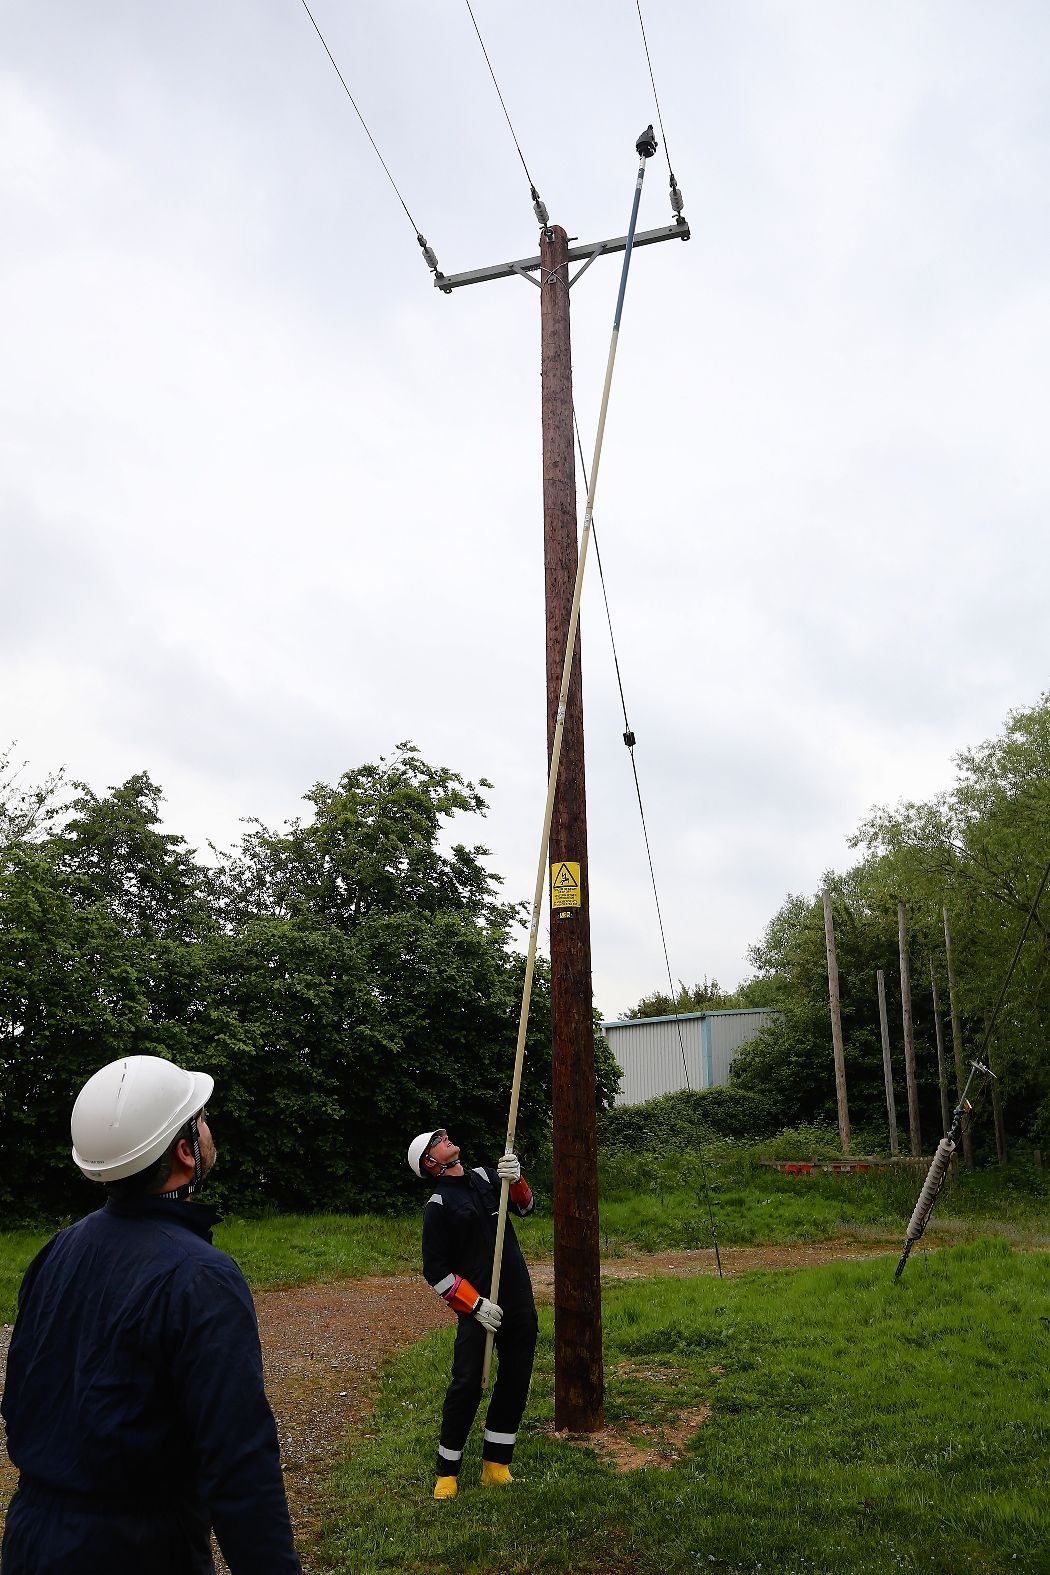 Engineer adding a smart navigator to overhead electricity power lines